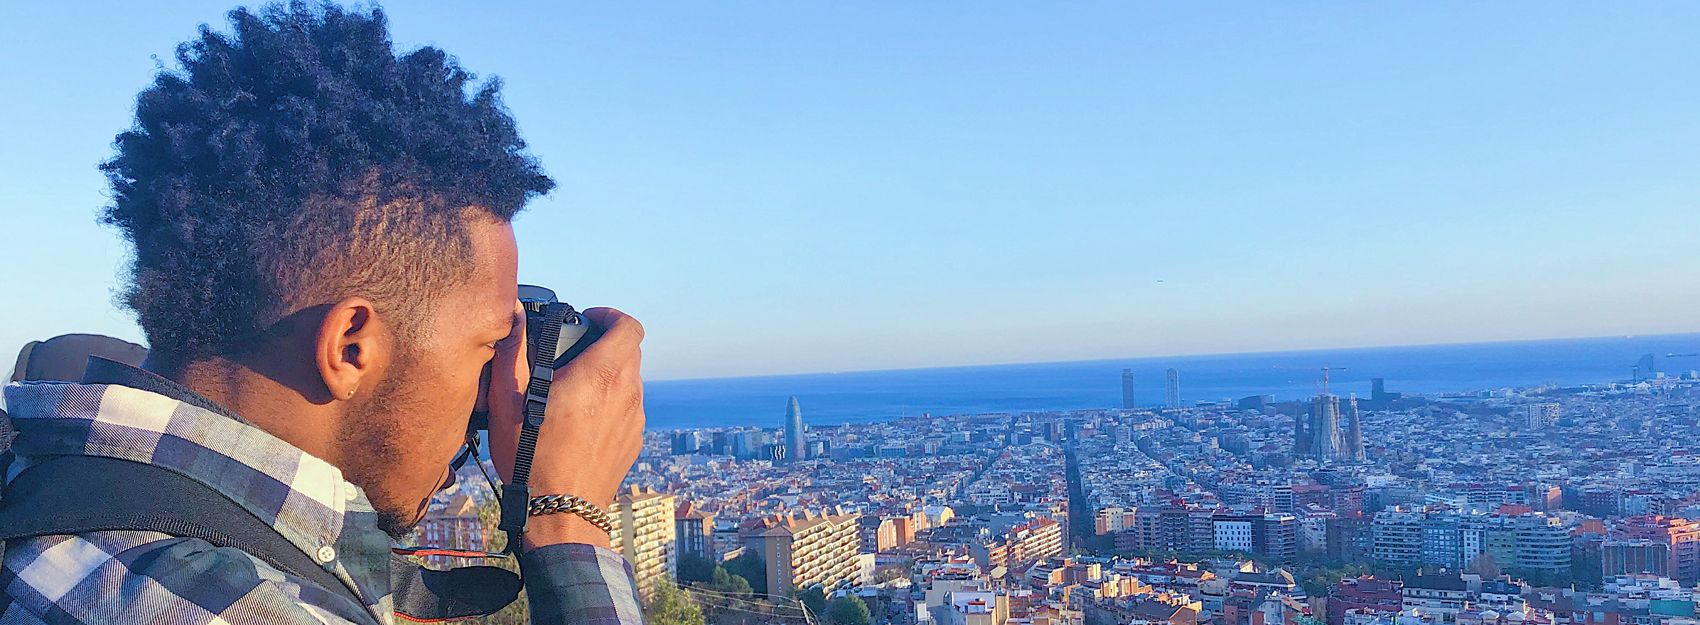 Male student taking photo of Barcelona cityscape and ocean